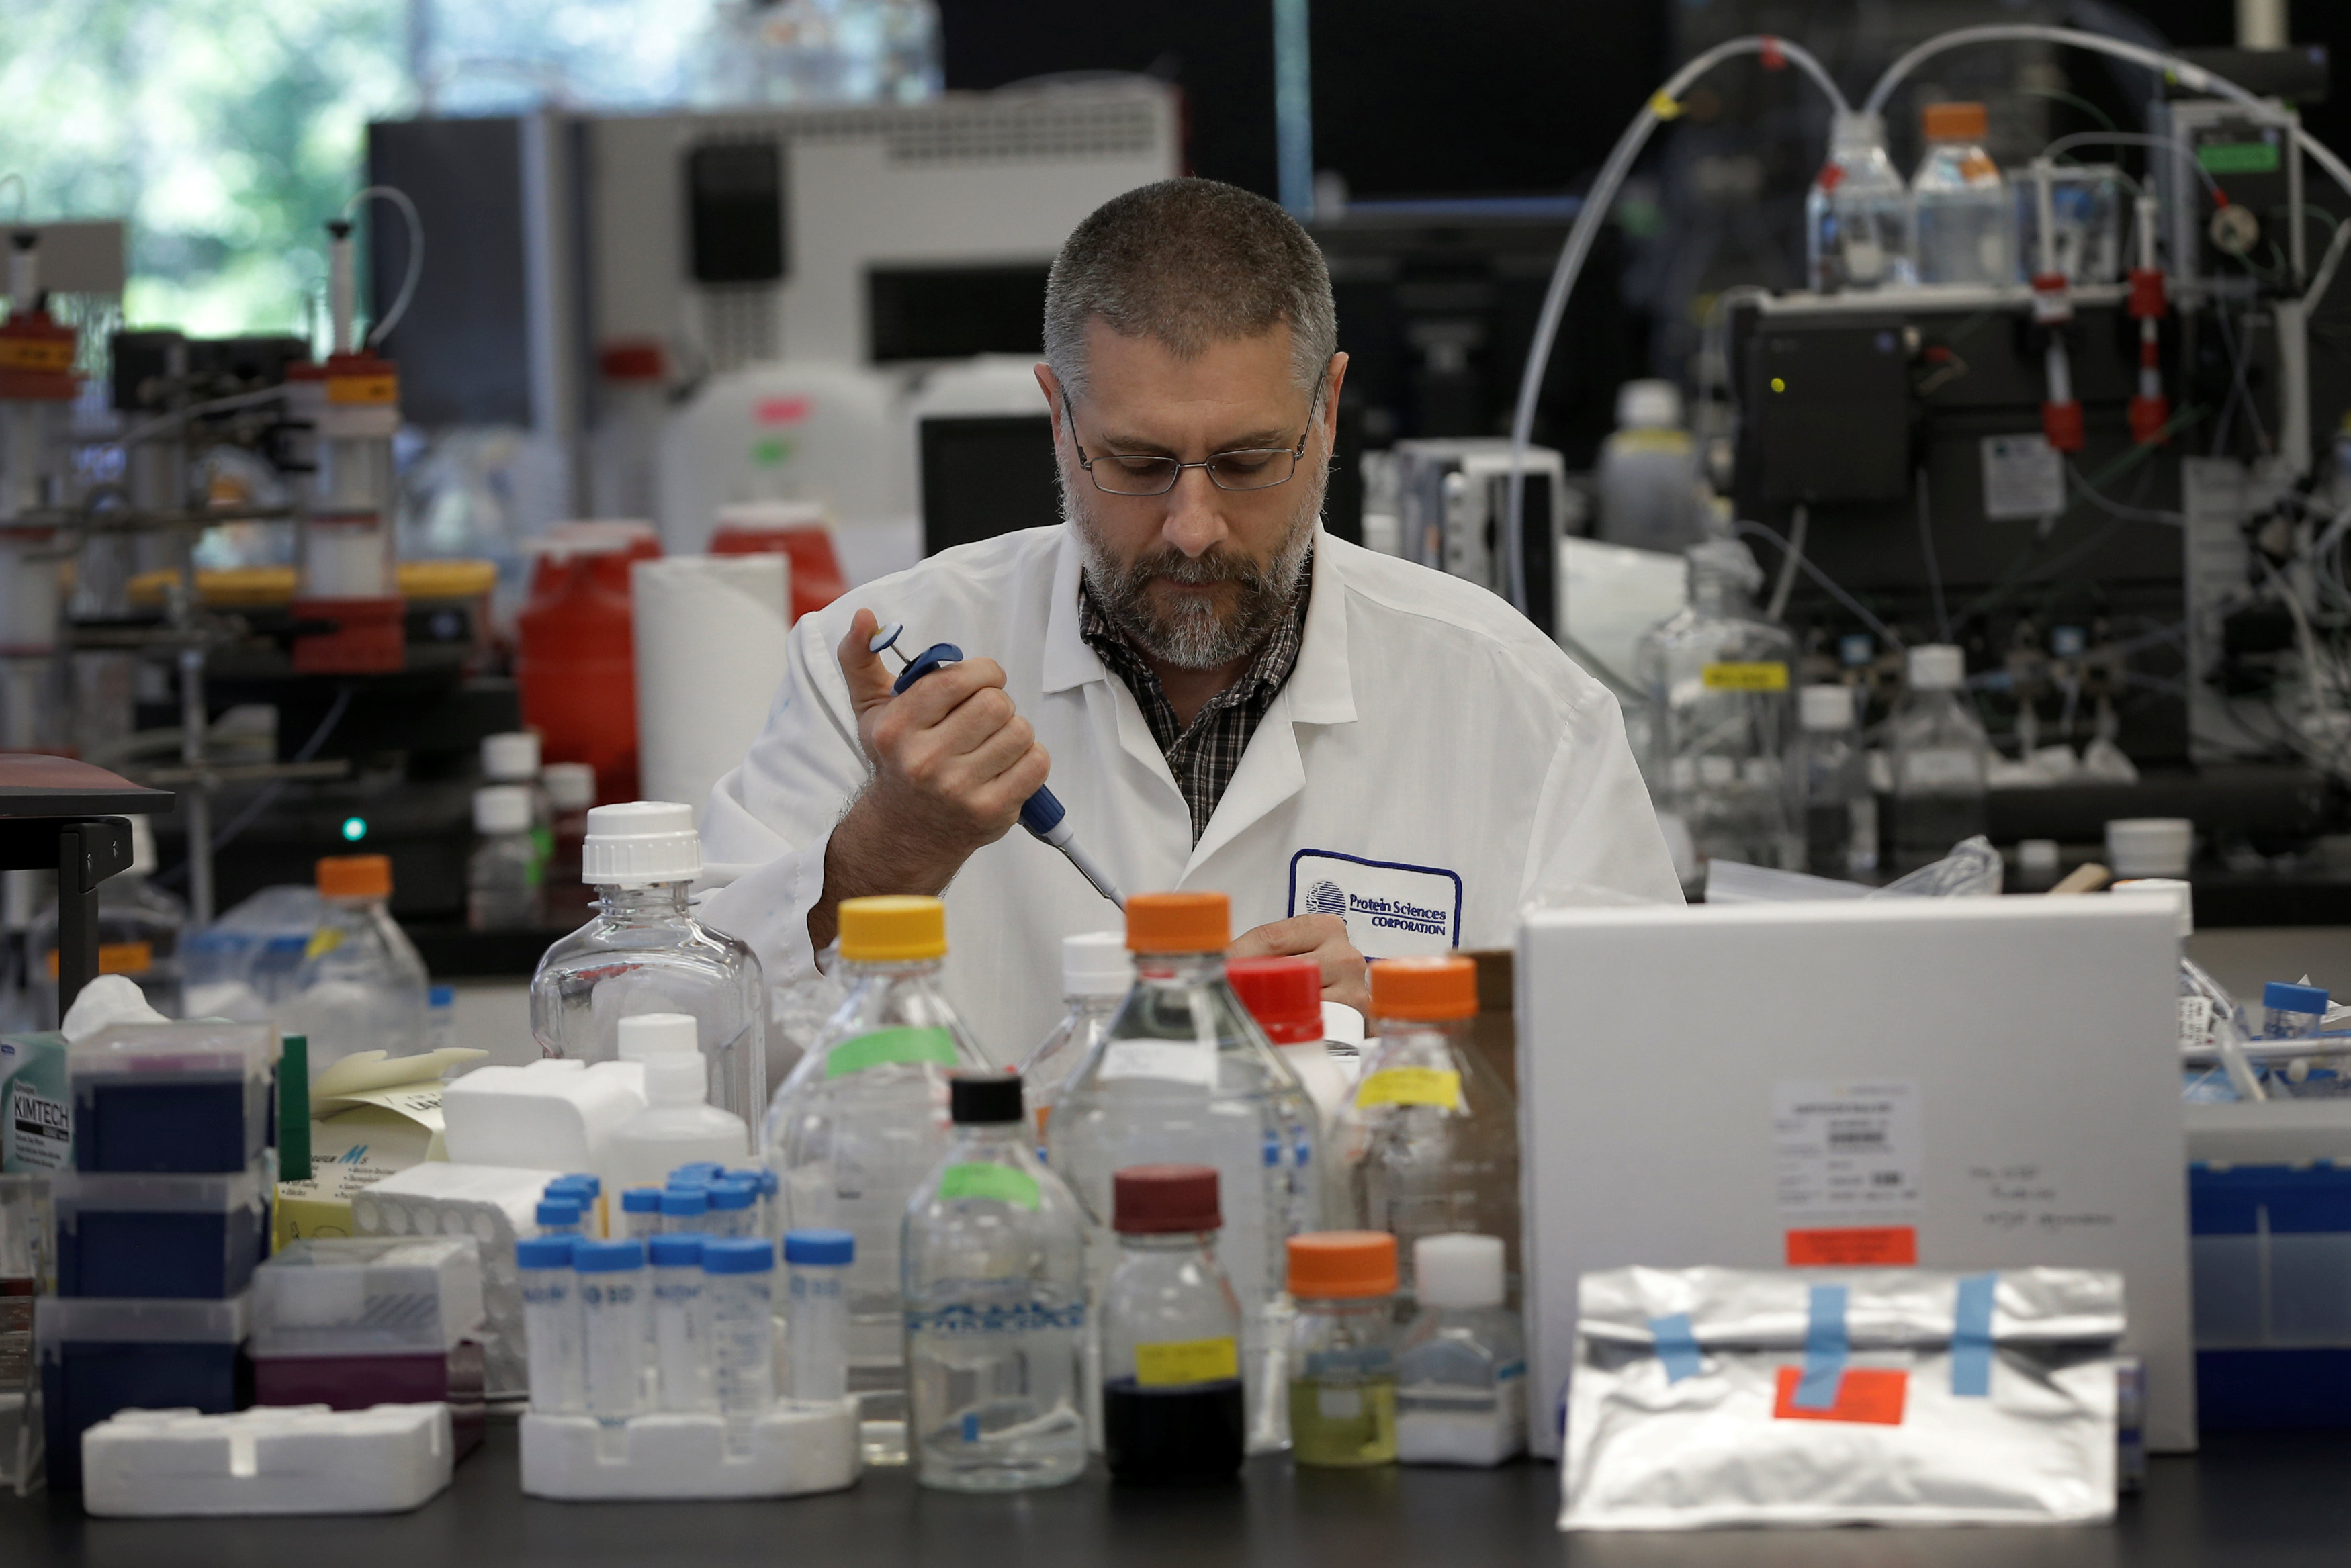 Research scientist Dan Galperin works in the research laboratory at Protein Sciences Inc. where they are working on developing a vaccine for the Zika virus i